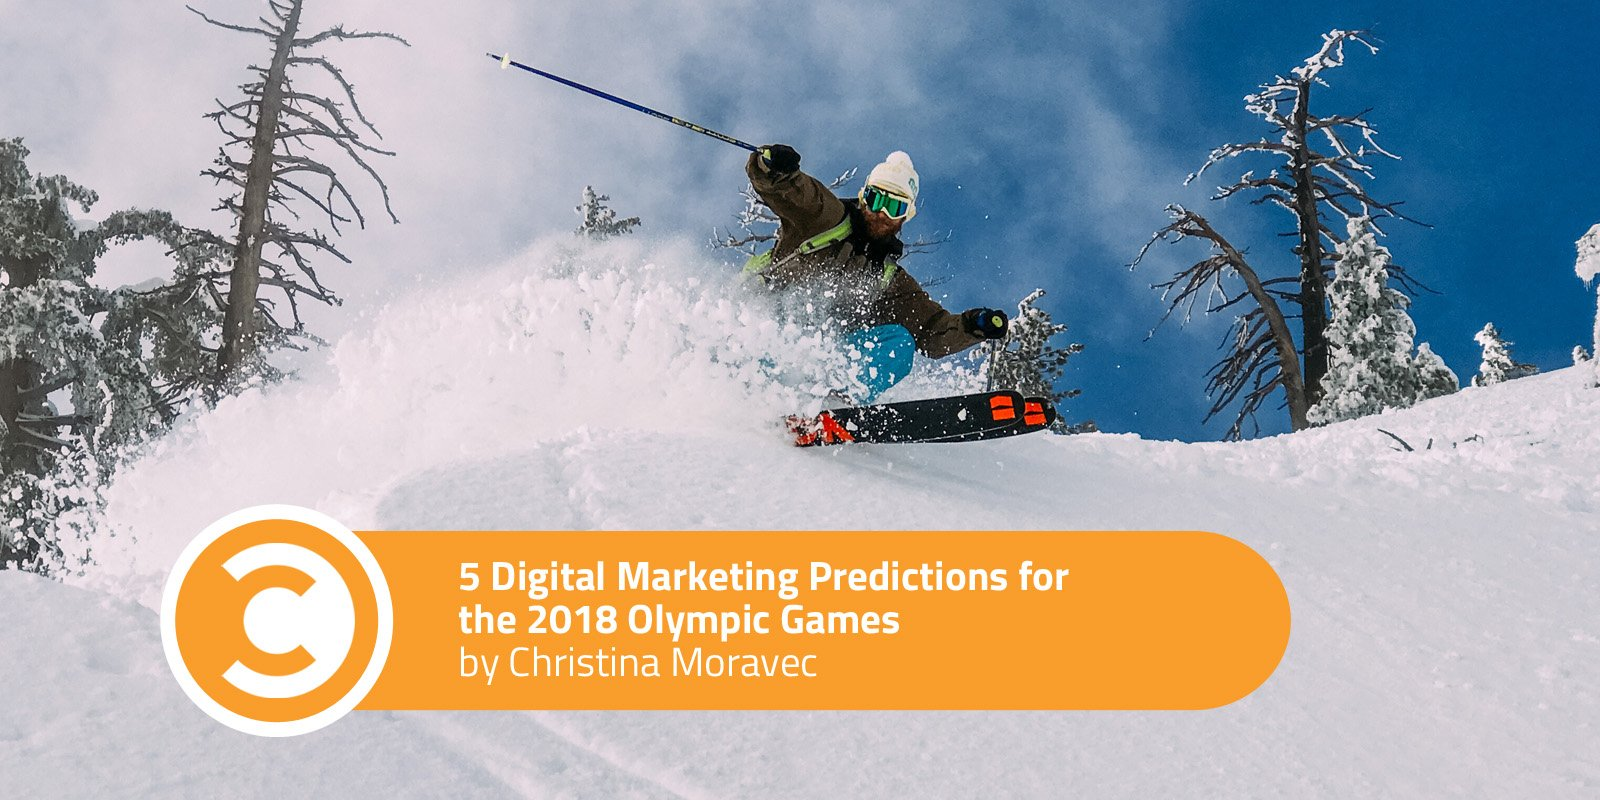 5 Digital Marketing Predictions for the 2018 Olympic Games